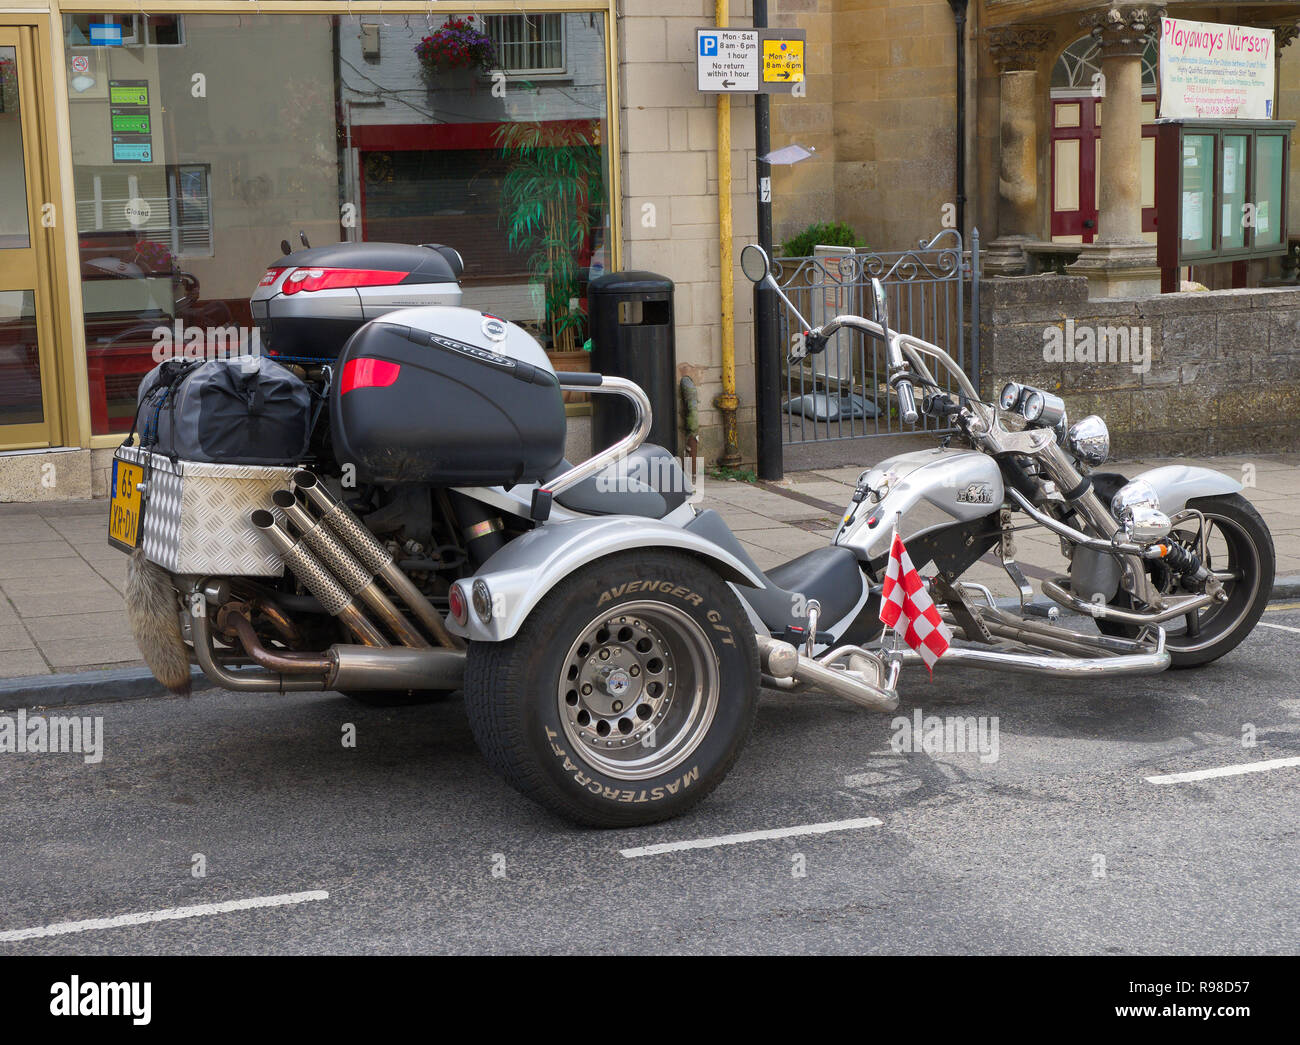 A Boom Low Rider Trike from Holland parked on the high-street in Glastonbury, Somerset, UK - Stock Image